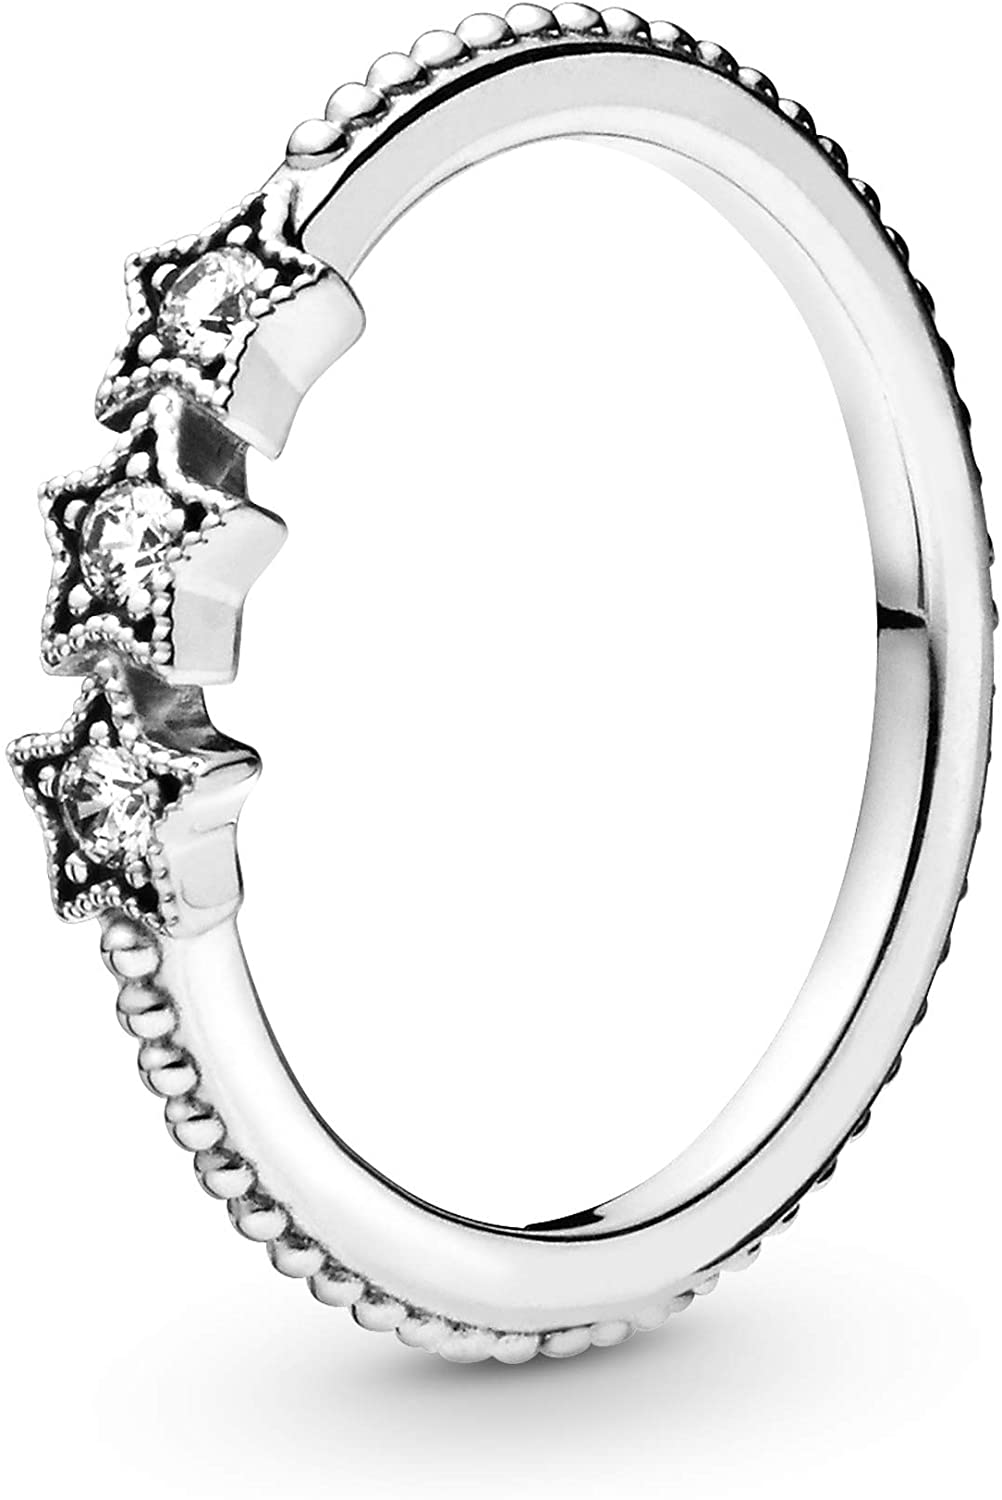 Pandora Jewelry Celestial Stars Cubic Zirconia Ring in Sterling Silver, Size 7.5